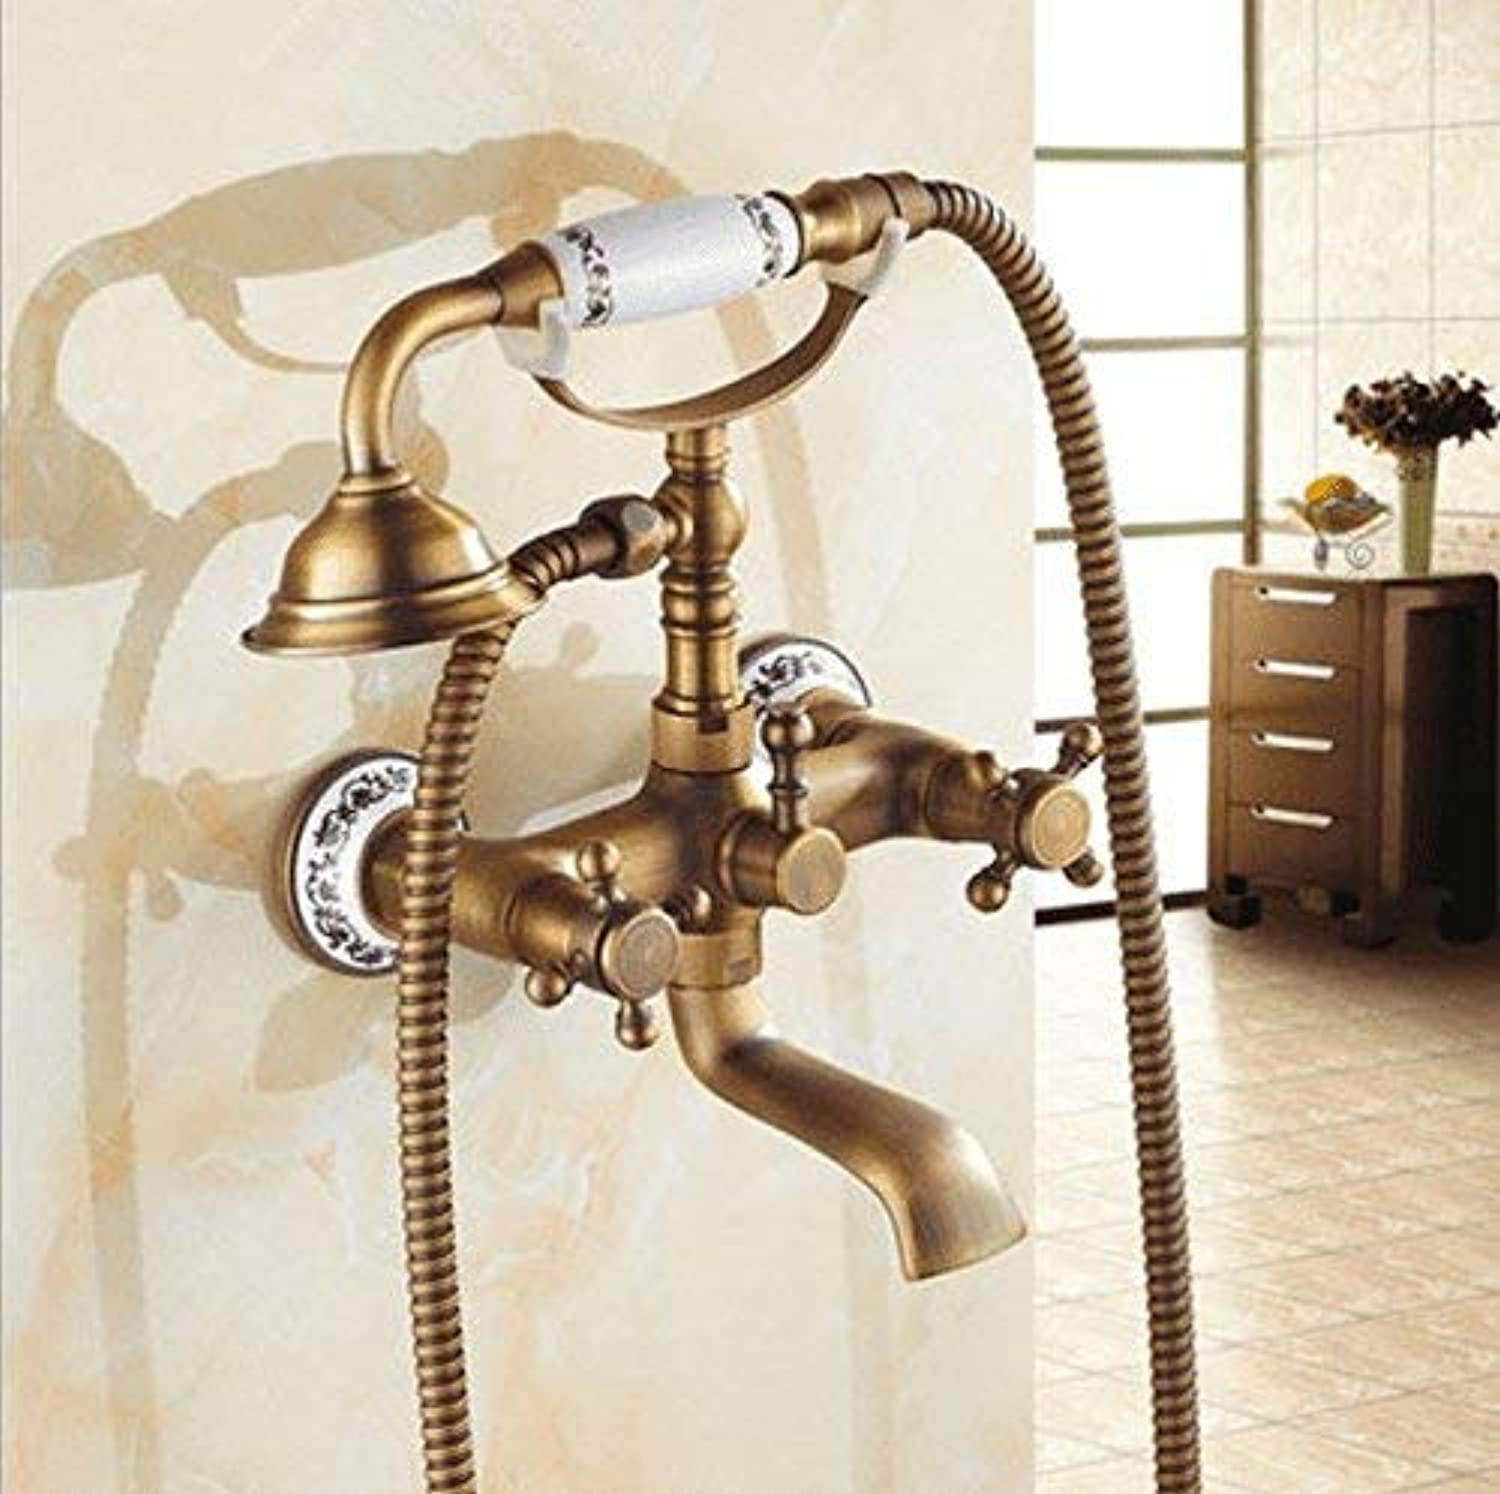 Ywqwdae Taps Kitchen Taps Basin Faucets Cold and Hot Water Mixer Bathroom Mixer Basin Mixer Tap Antique Hand Shower Retro Brushed Copper Hot and Cold for Kitchen Or Bathroom Taps